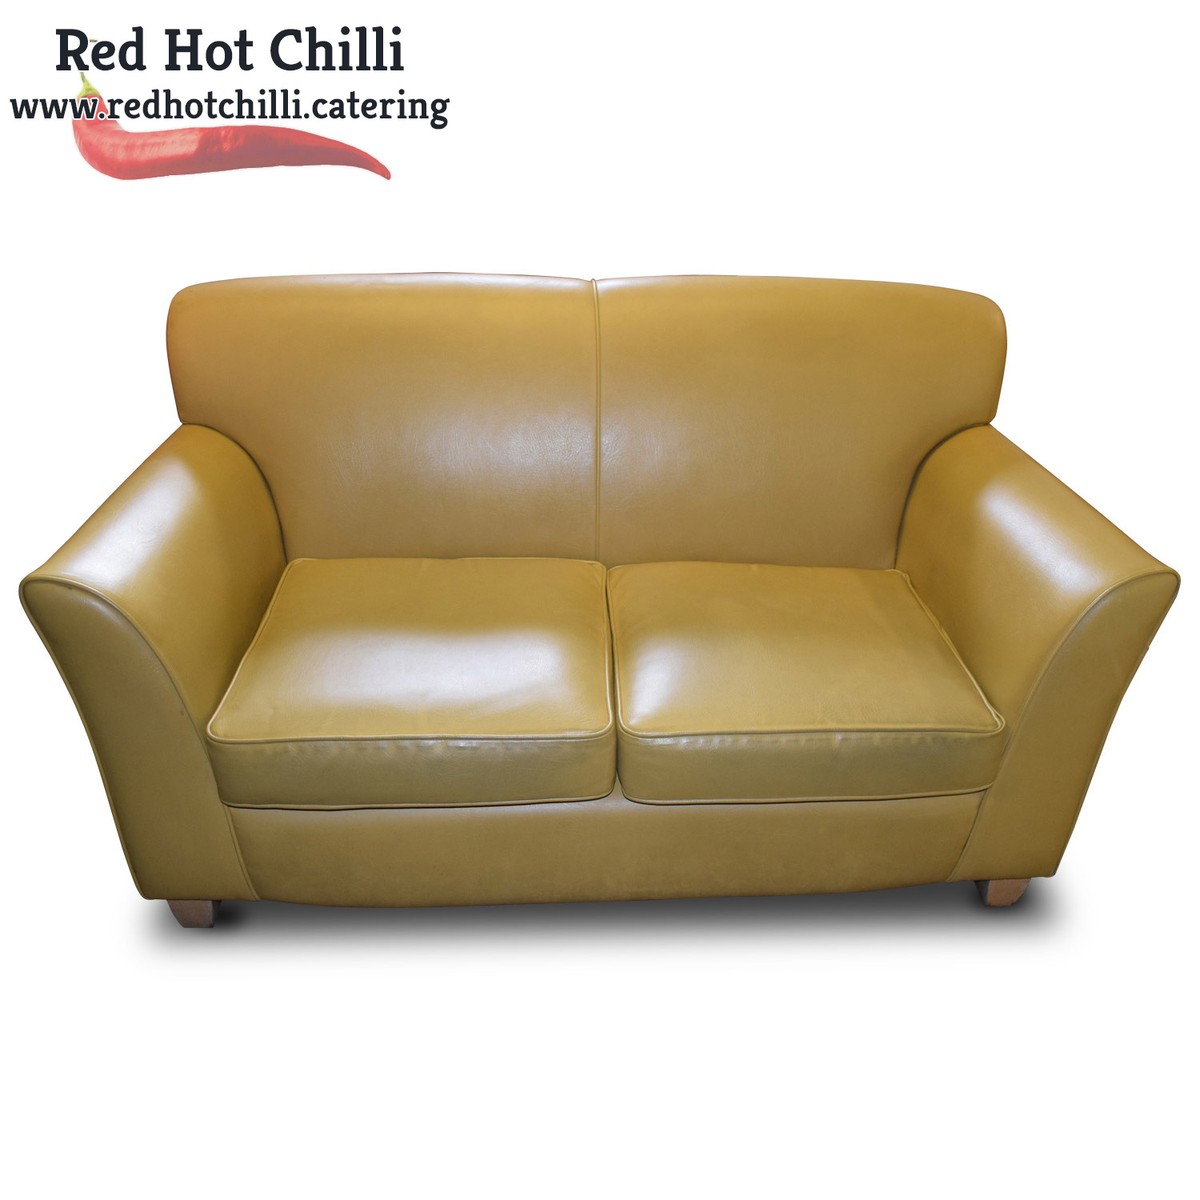 Curlew Secondhand Marquees Red Hot Chilli Cheshire Mustard Yellow Leather Sofa Ref